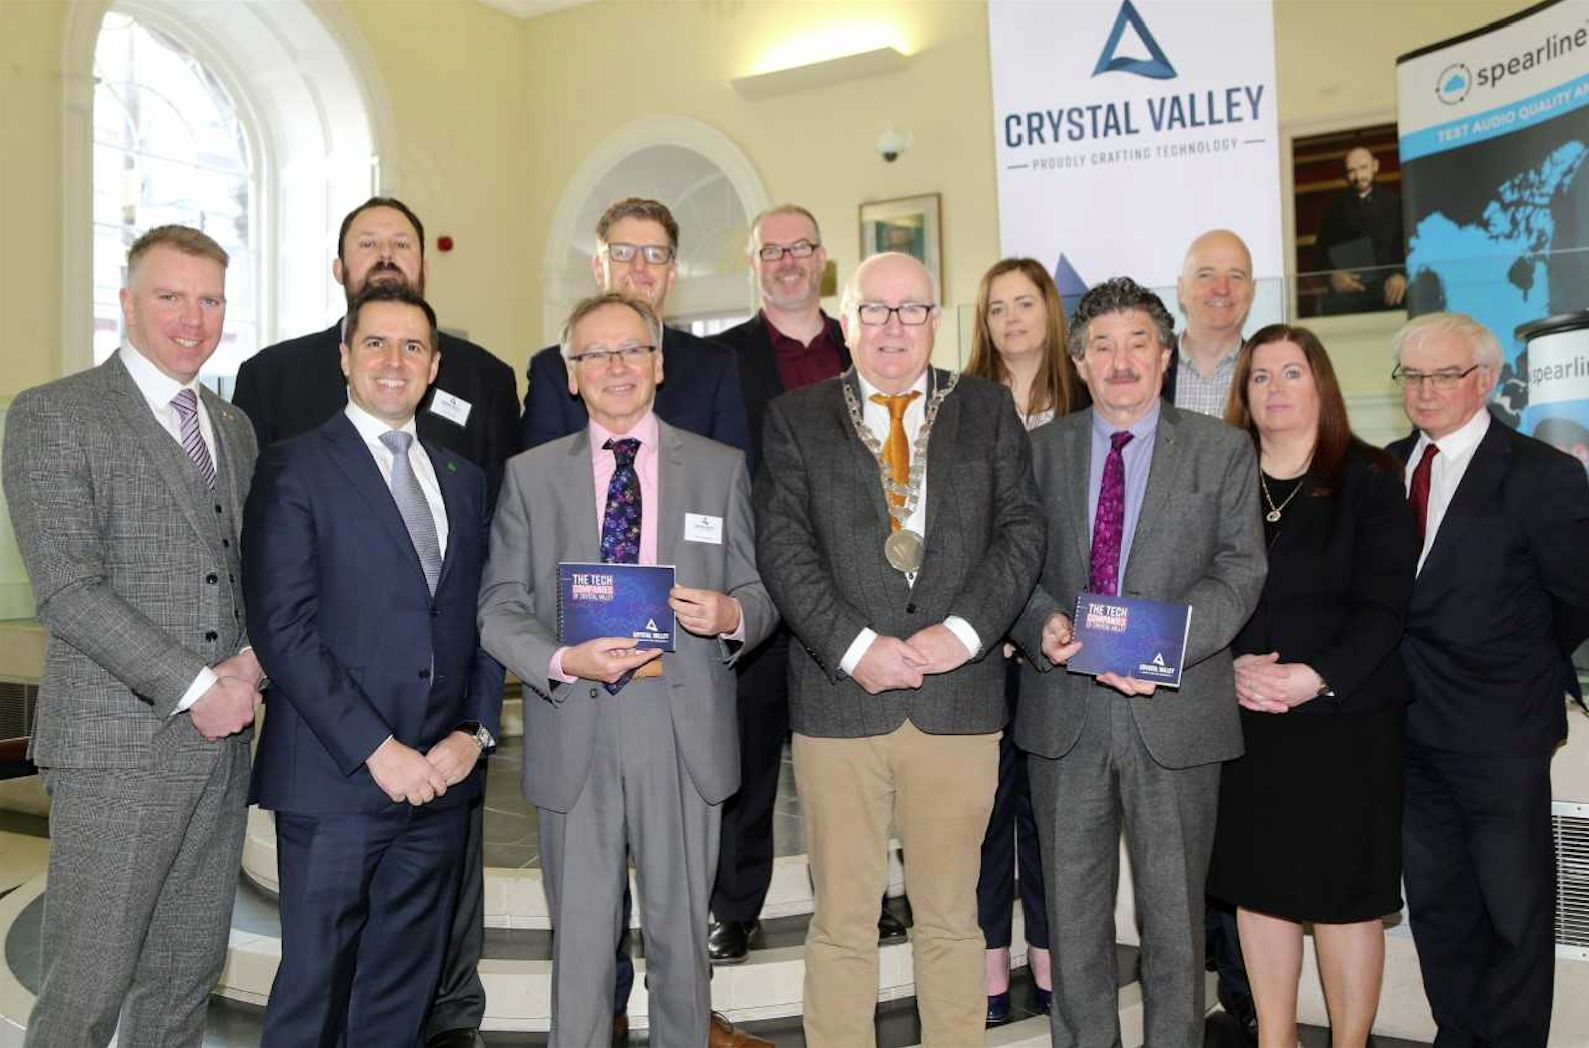 Formal launch of Crystal Valley Tech in Waterford on 26 February 2018